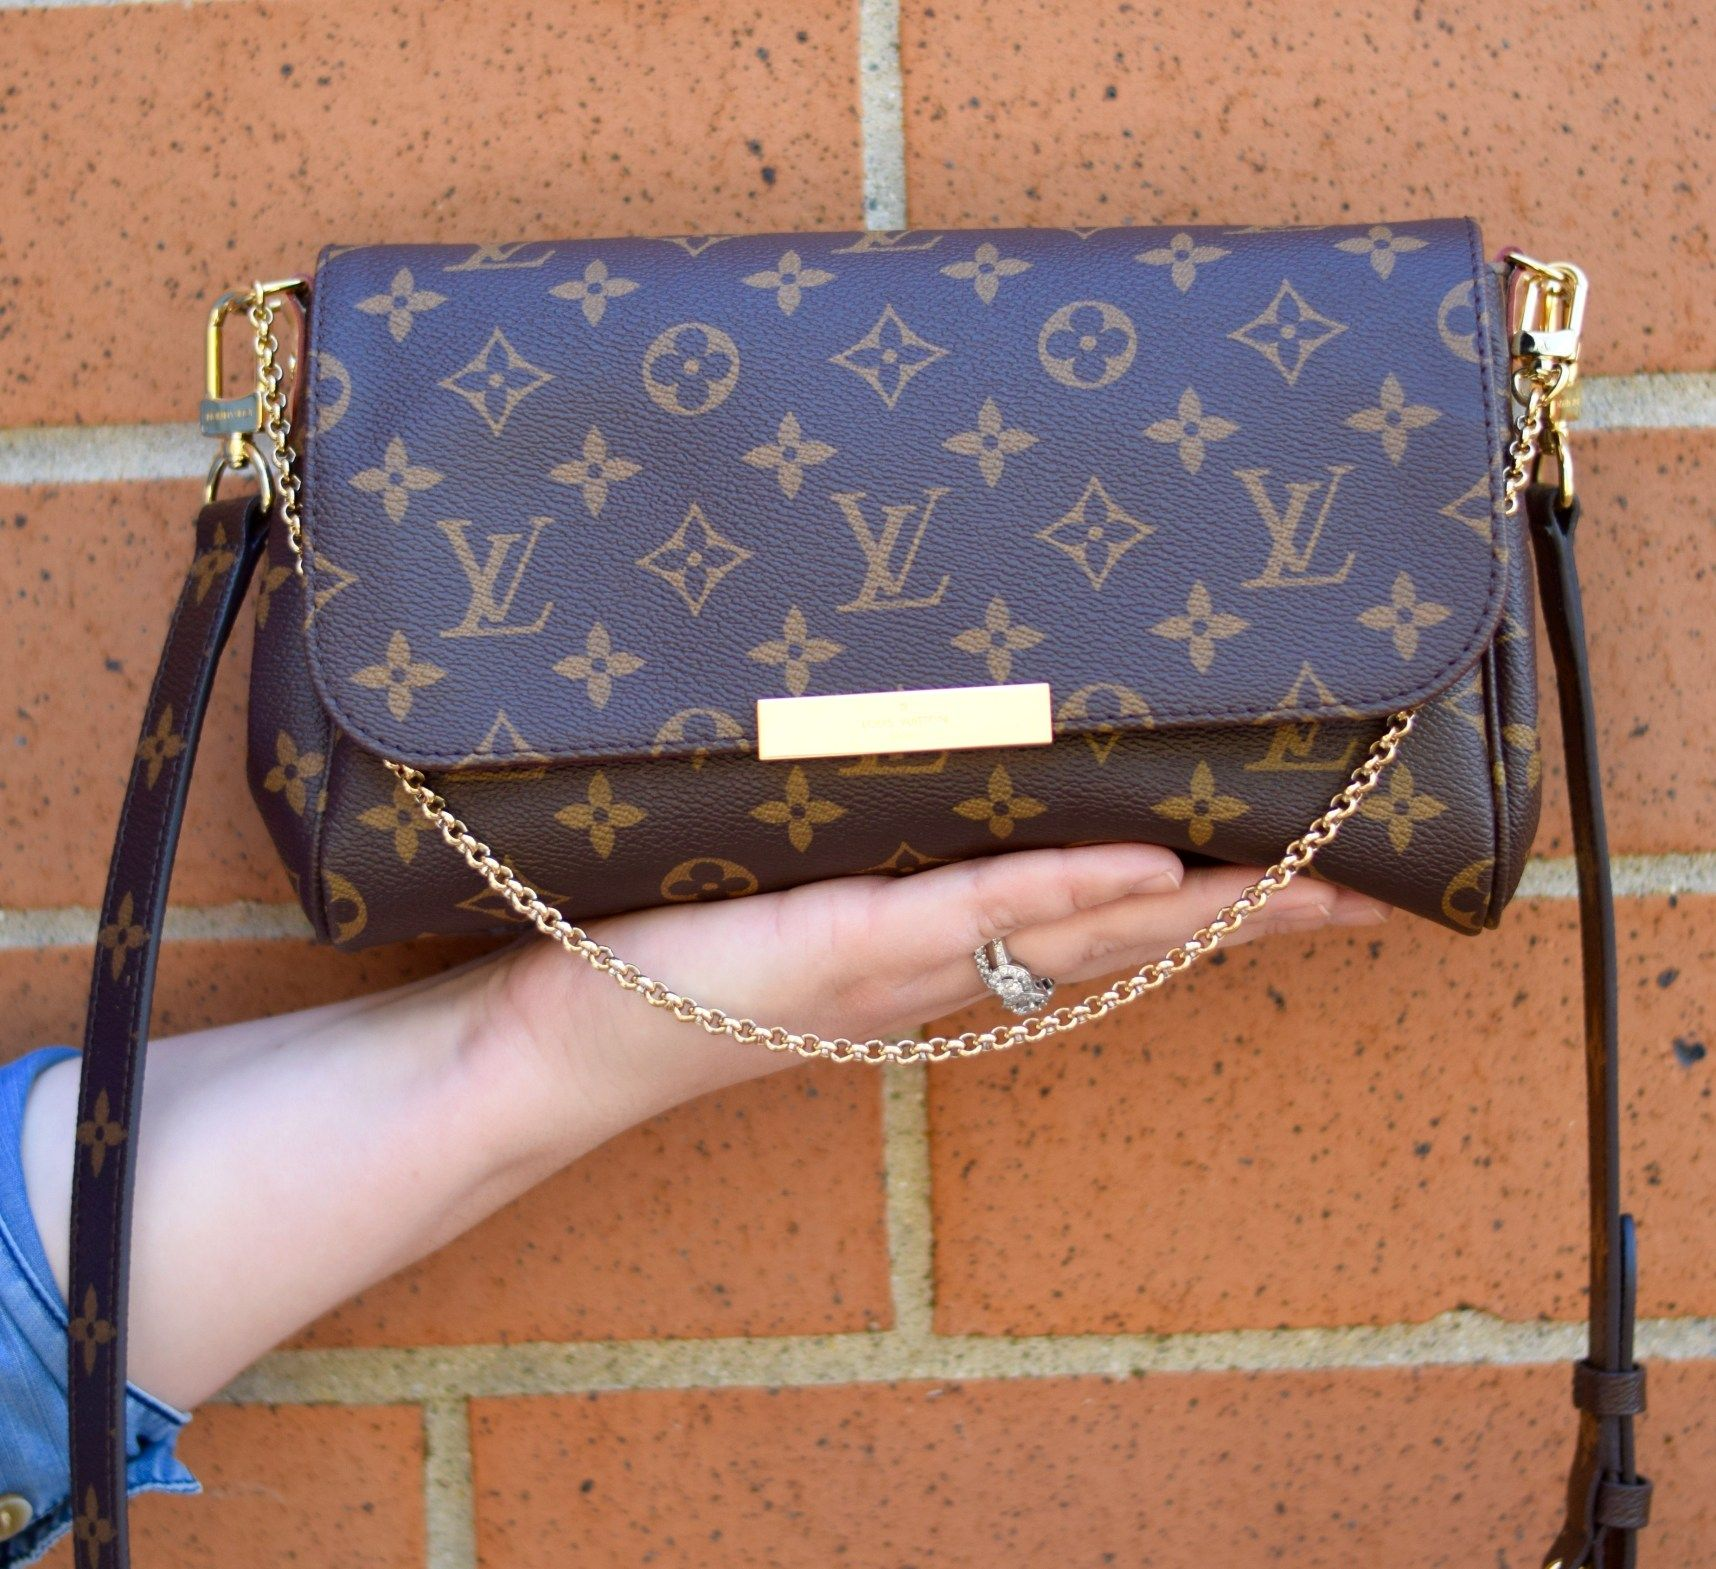 Louis Vuitton Favorite MM Review - Curls and Contours #louisvuittonhandbags